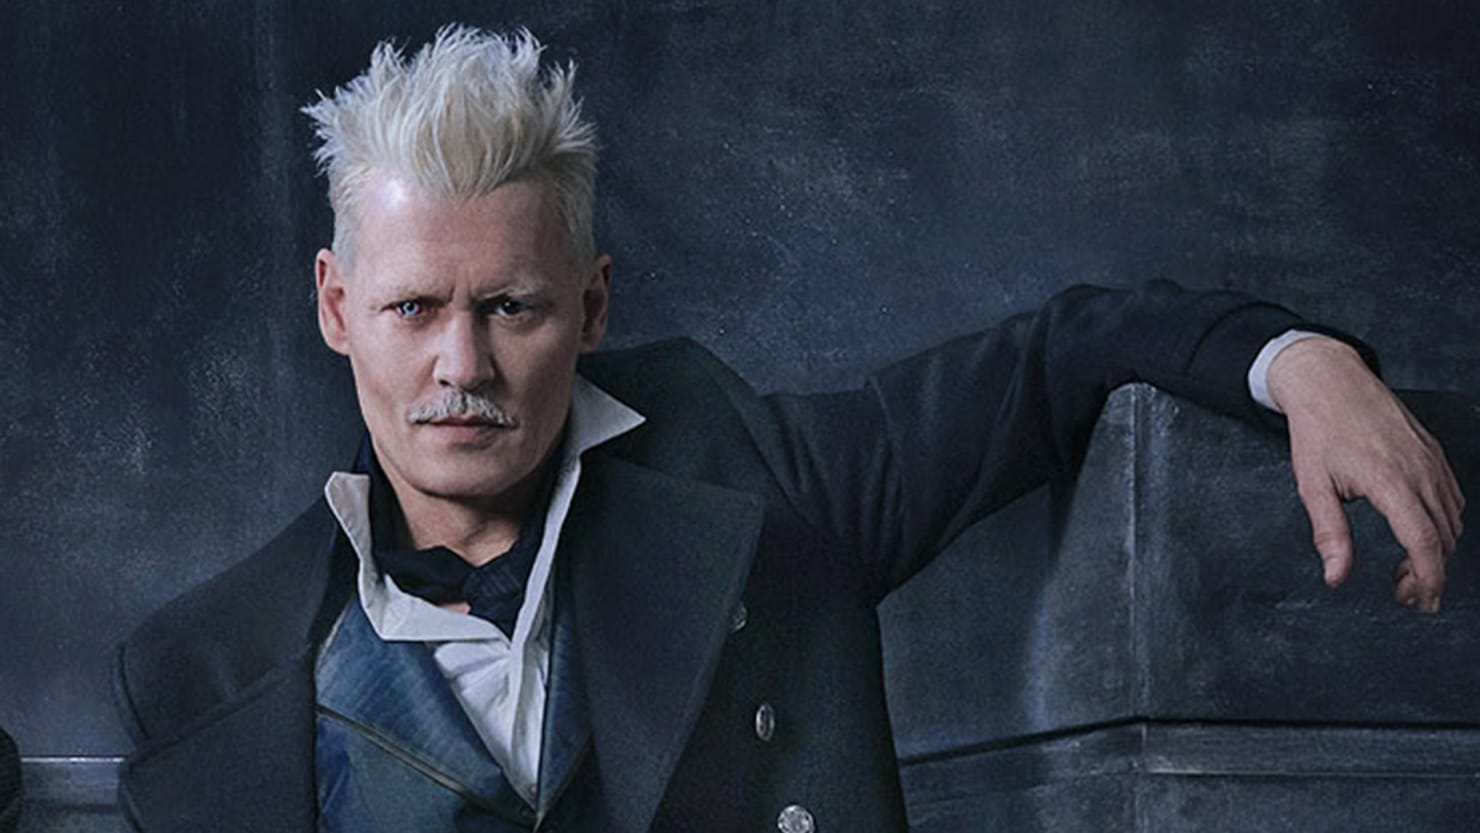 J.K. Rowling's Cowardly Defense of Alleged Abuser Johnny Depp in 'Fantastic Beasts'